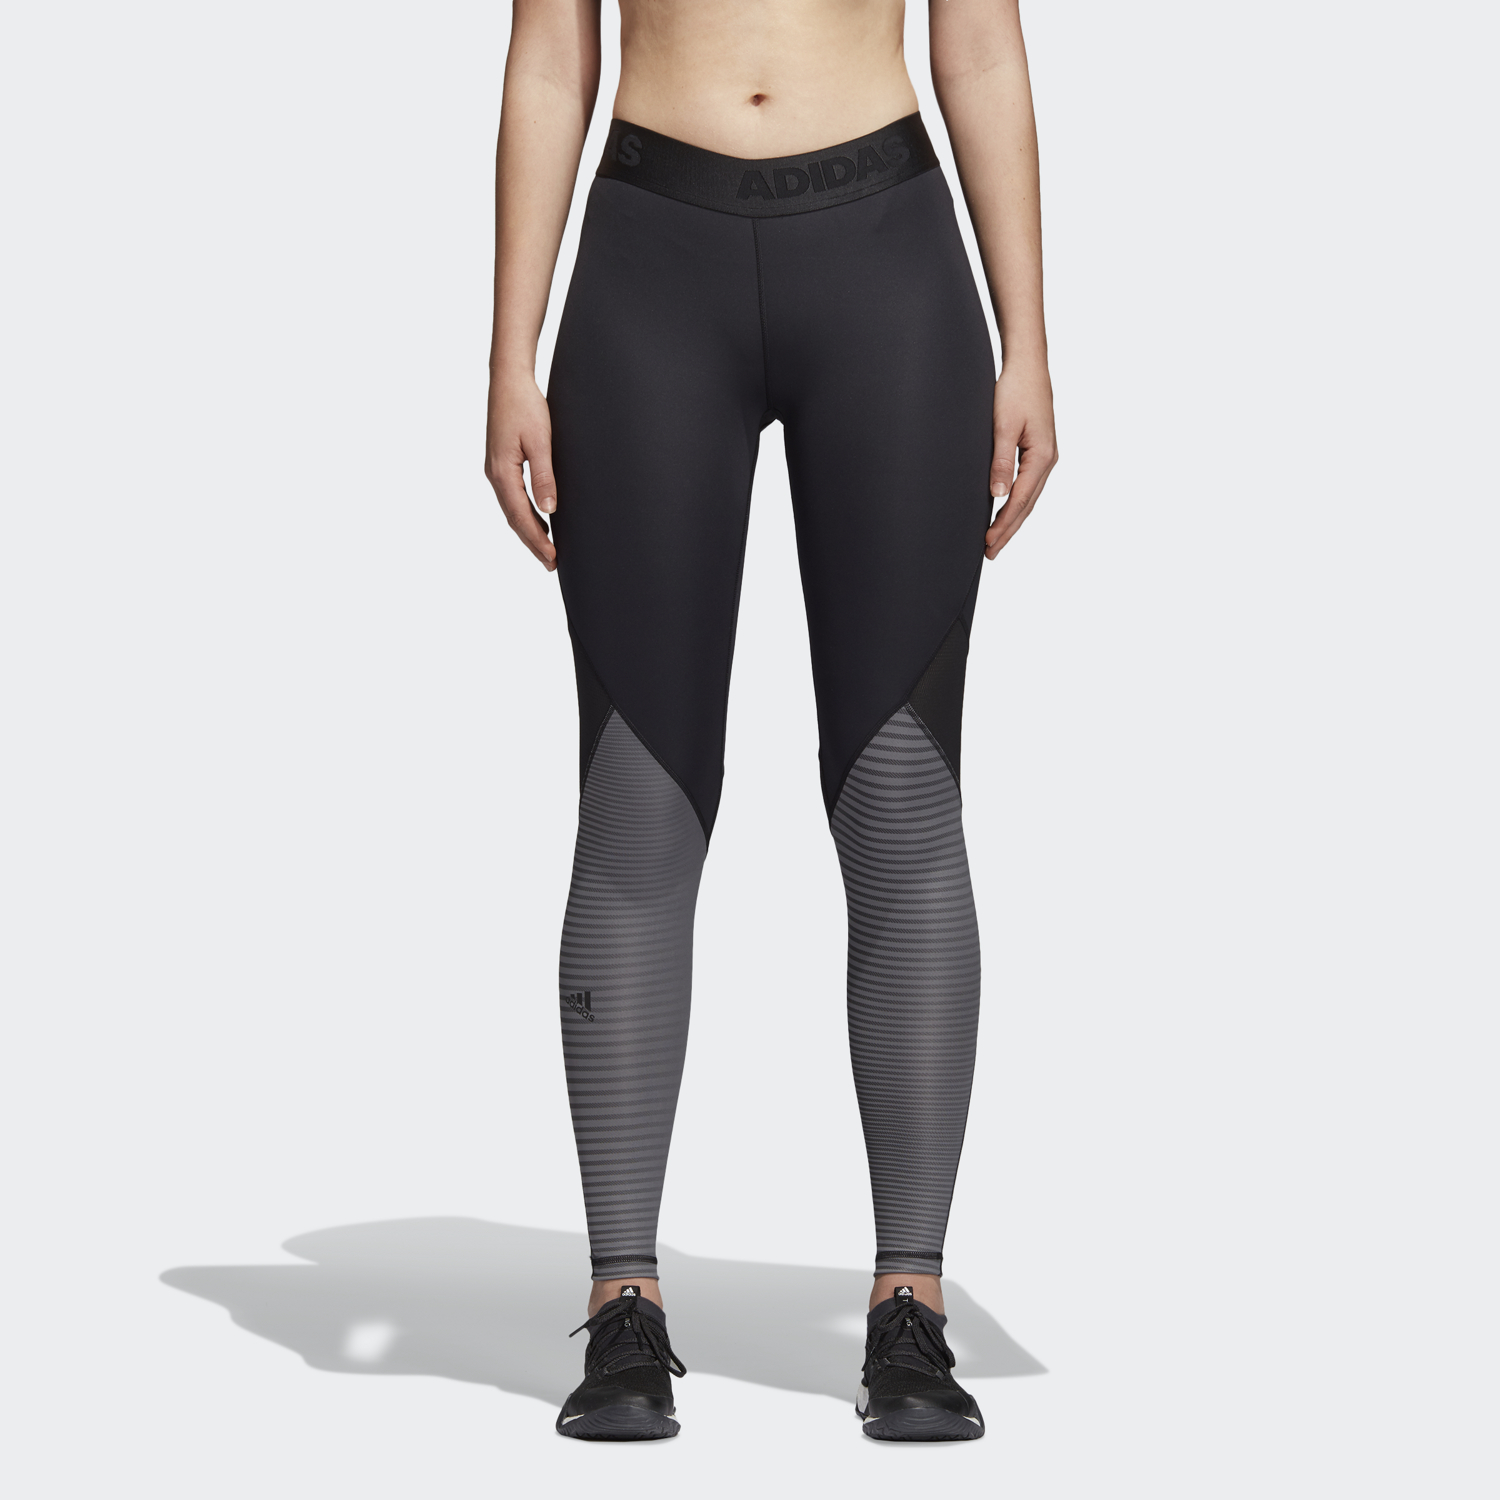 ADIDAS ALPHASKIN SPORT TIGHT WOMEN'S